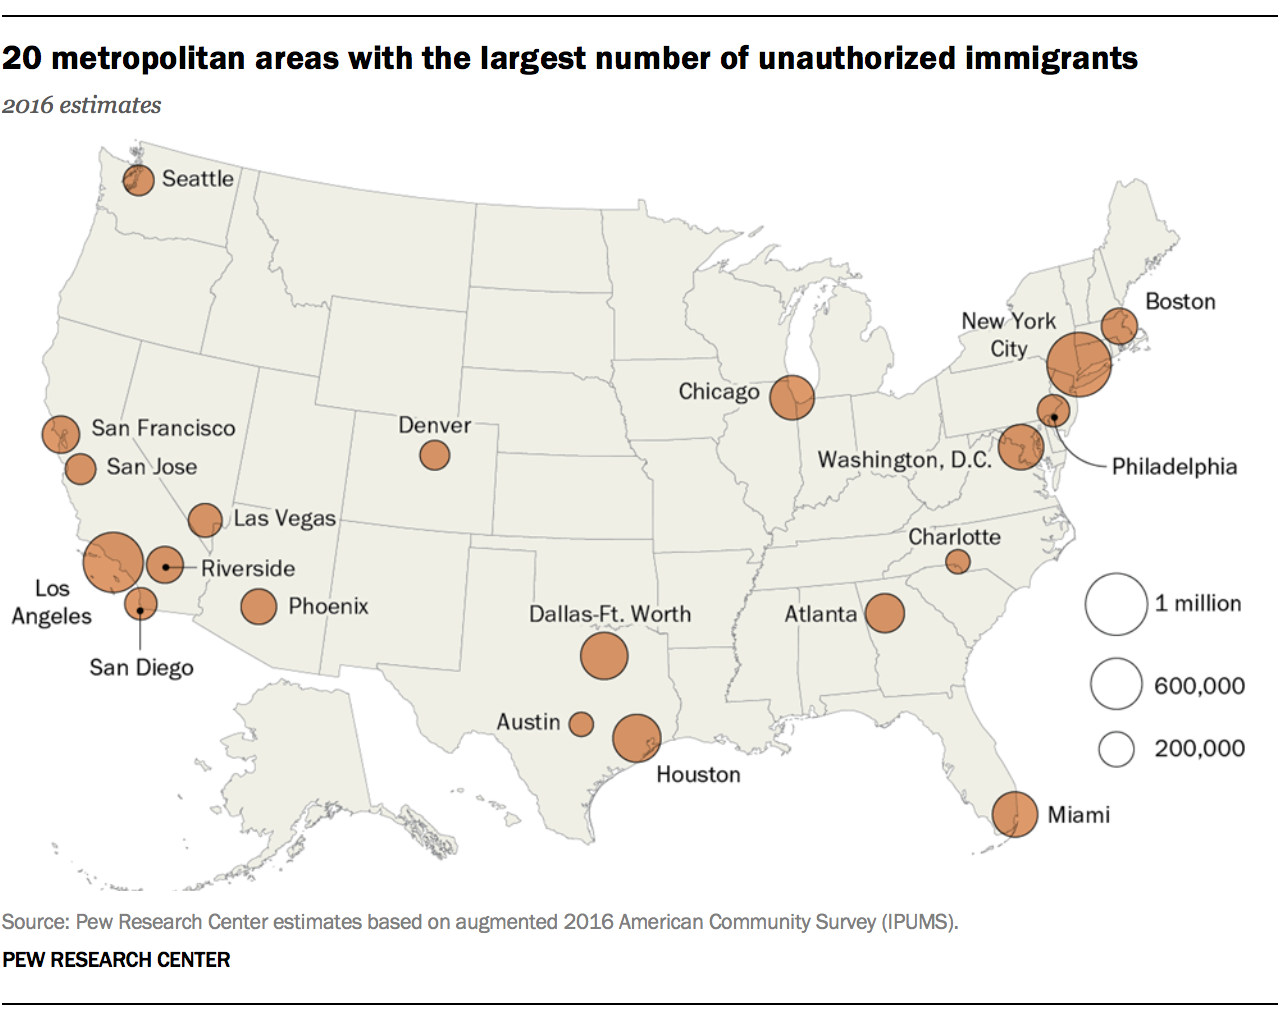 Los Angeles Subway Map 2016.Most U S Unauthorized Immigrants Live In Just 20 Metro Areas Pew